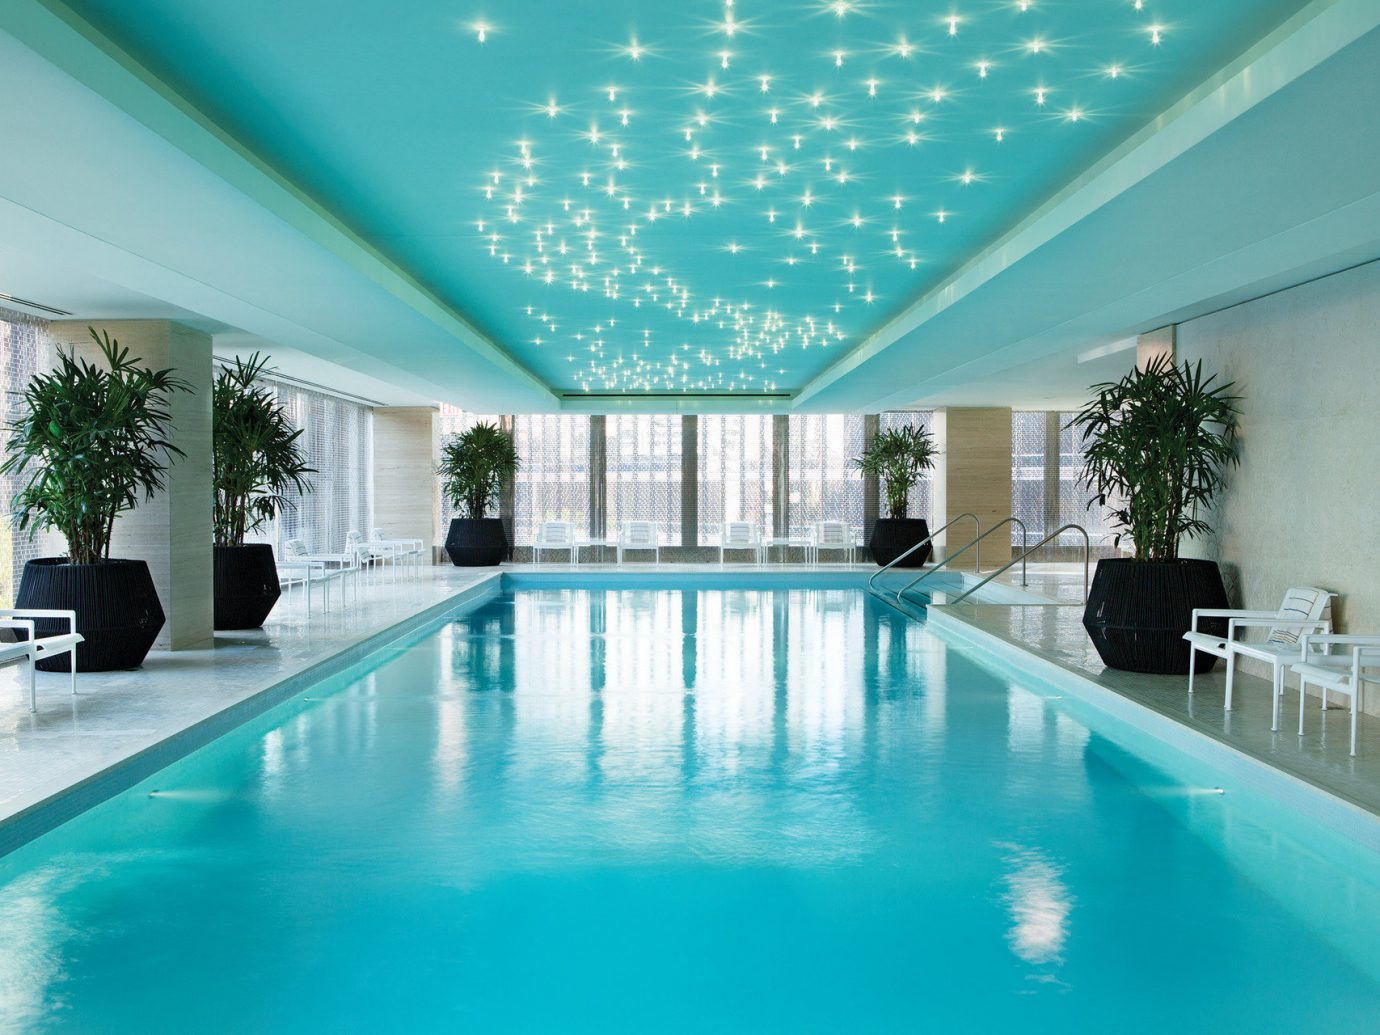 Hotels water Pool indoor floor ceiling swimming pool property room building Resort estate blue leisure centre condominium interior design mansion swimming real estate Villa Dining furniture